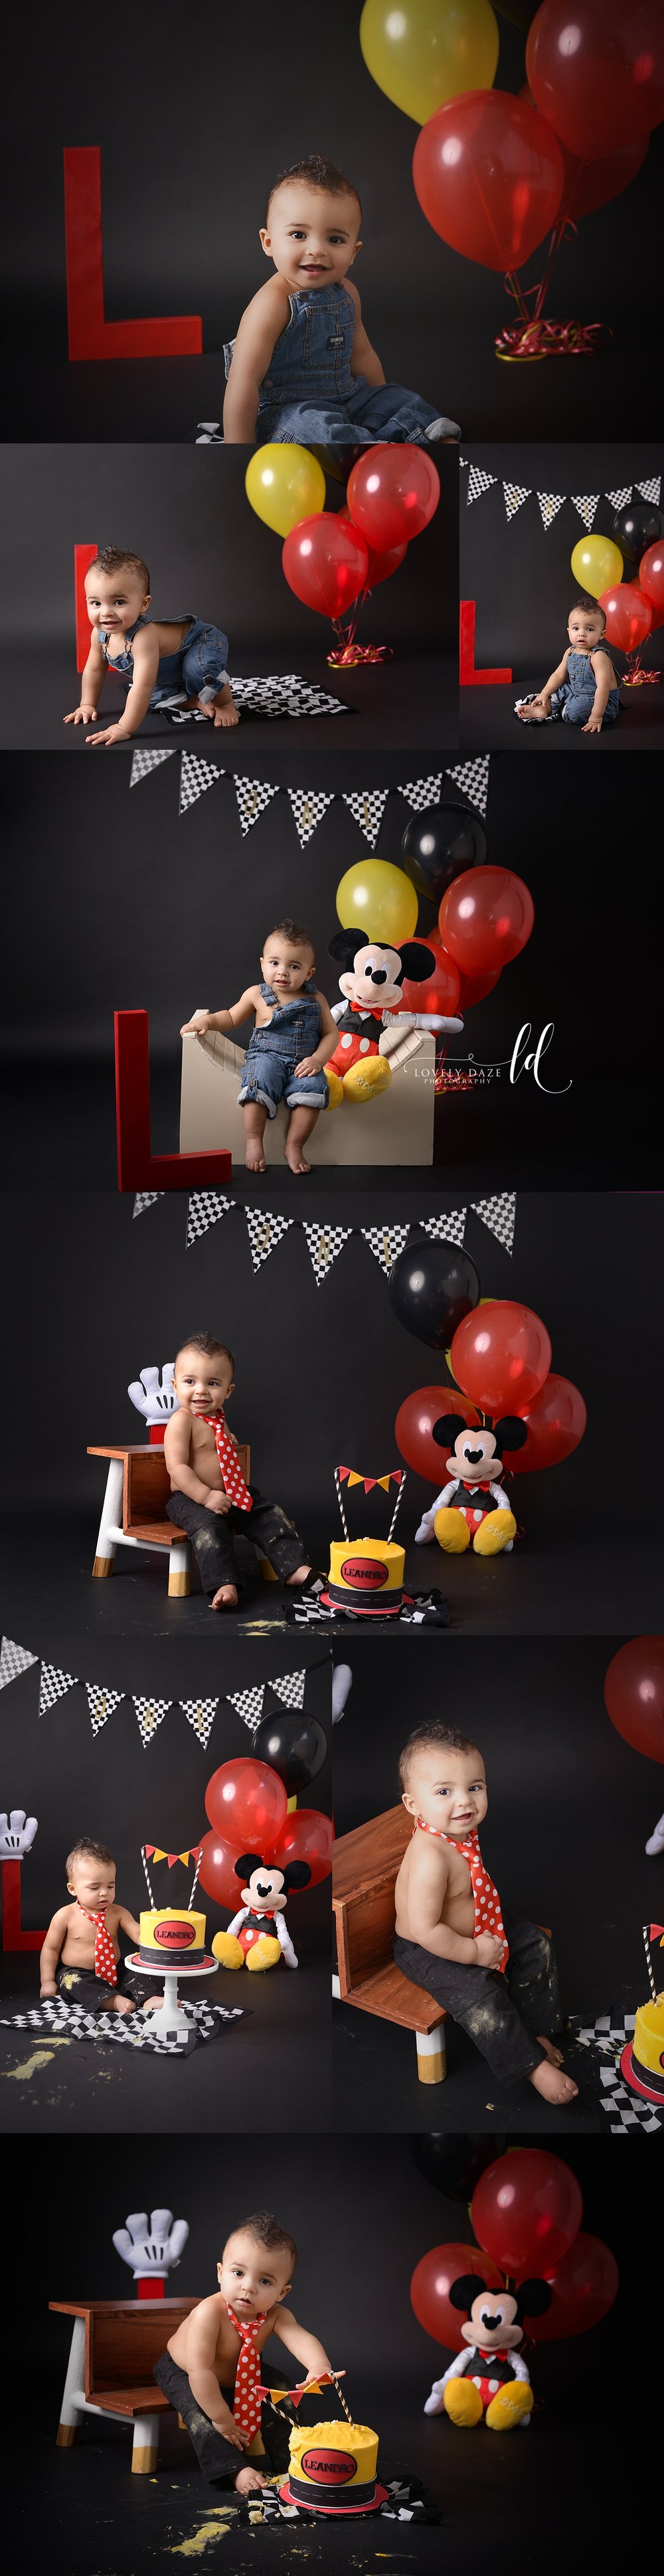 best nj cake smash photographer mickey mouse cake smash baby boy.jpg